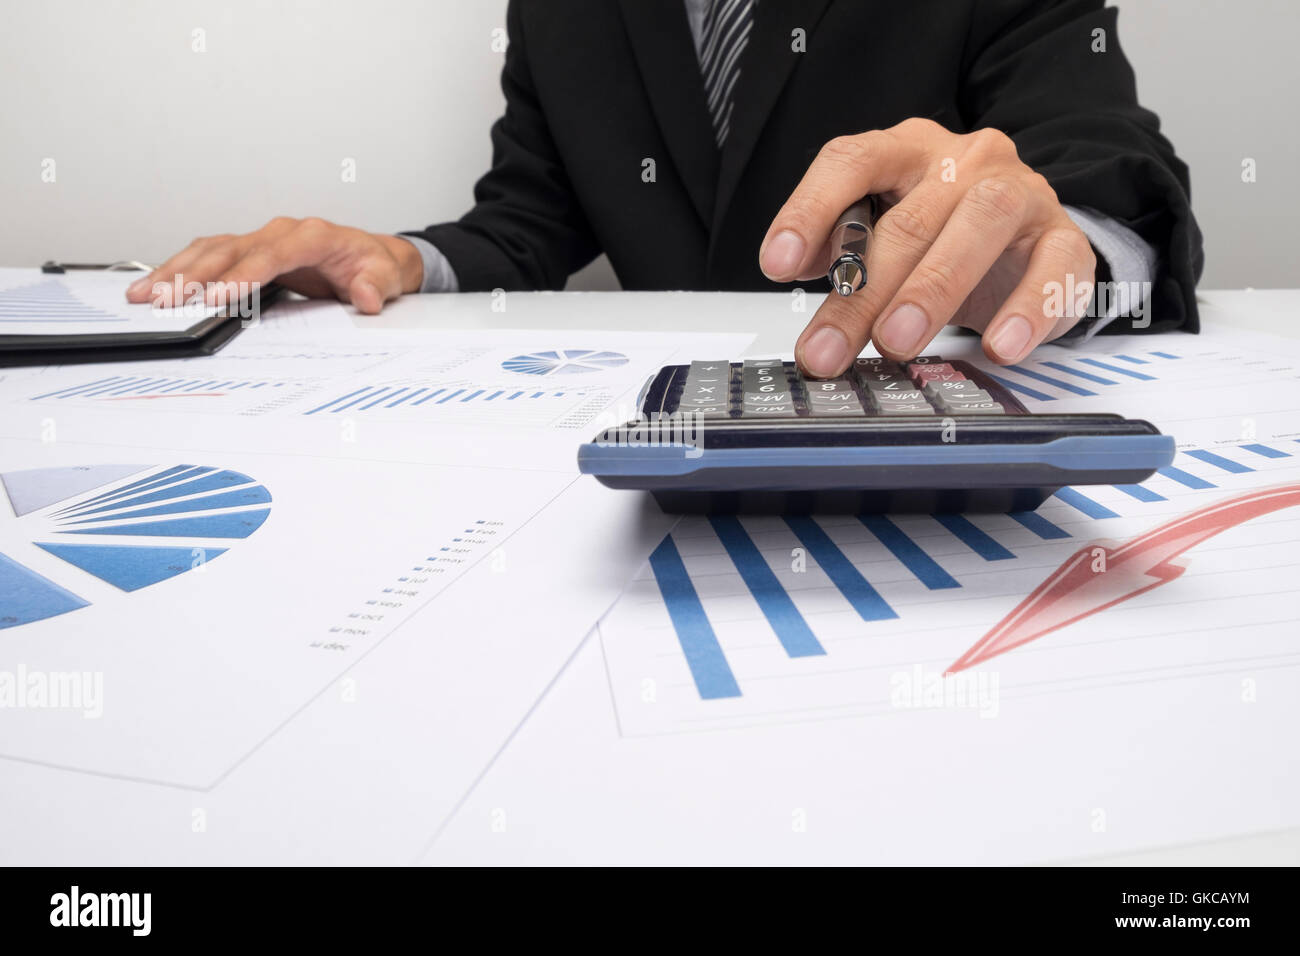 Asian Business man using a calculator to calculate the numbers - Stock Image